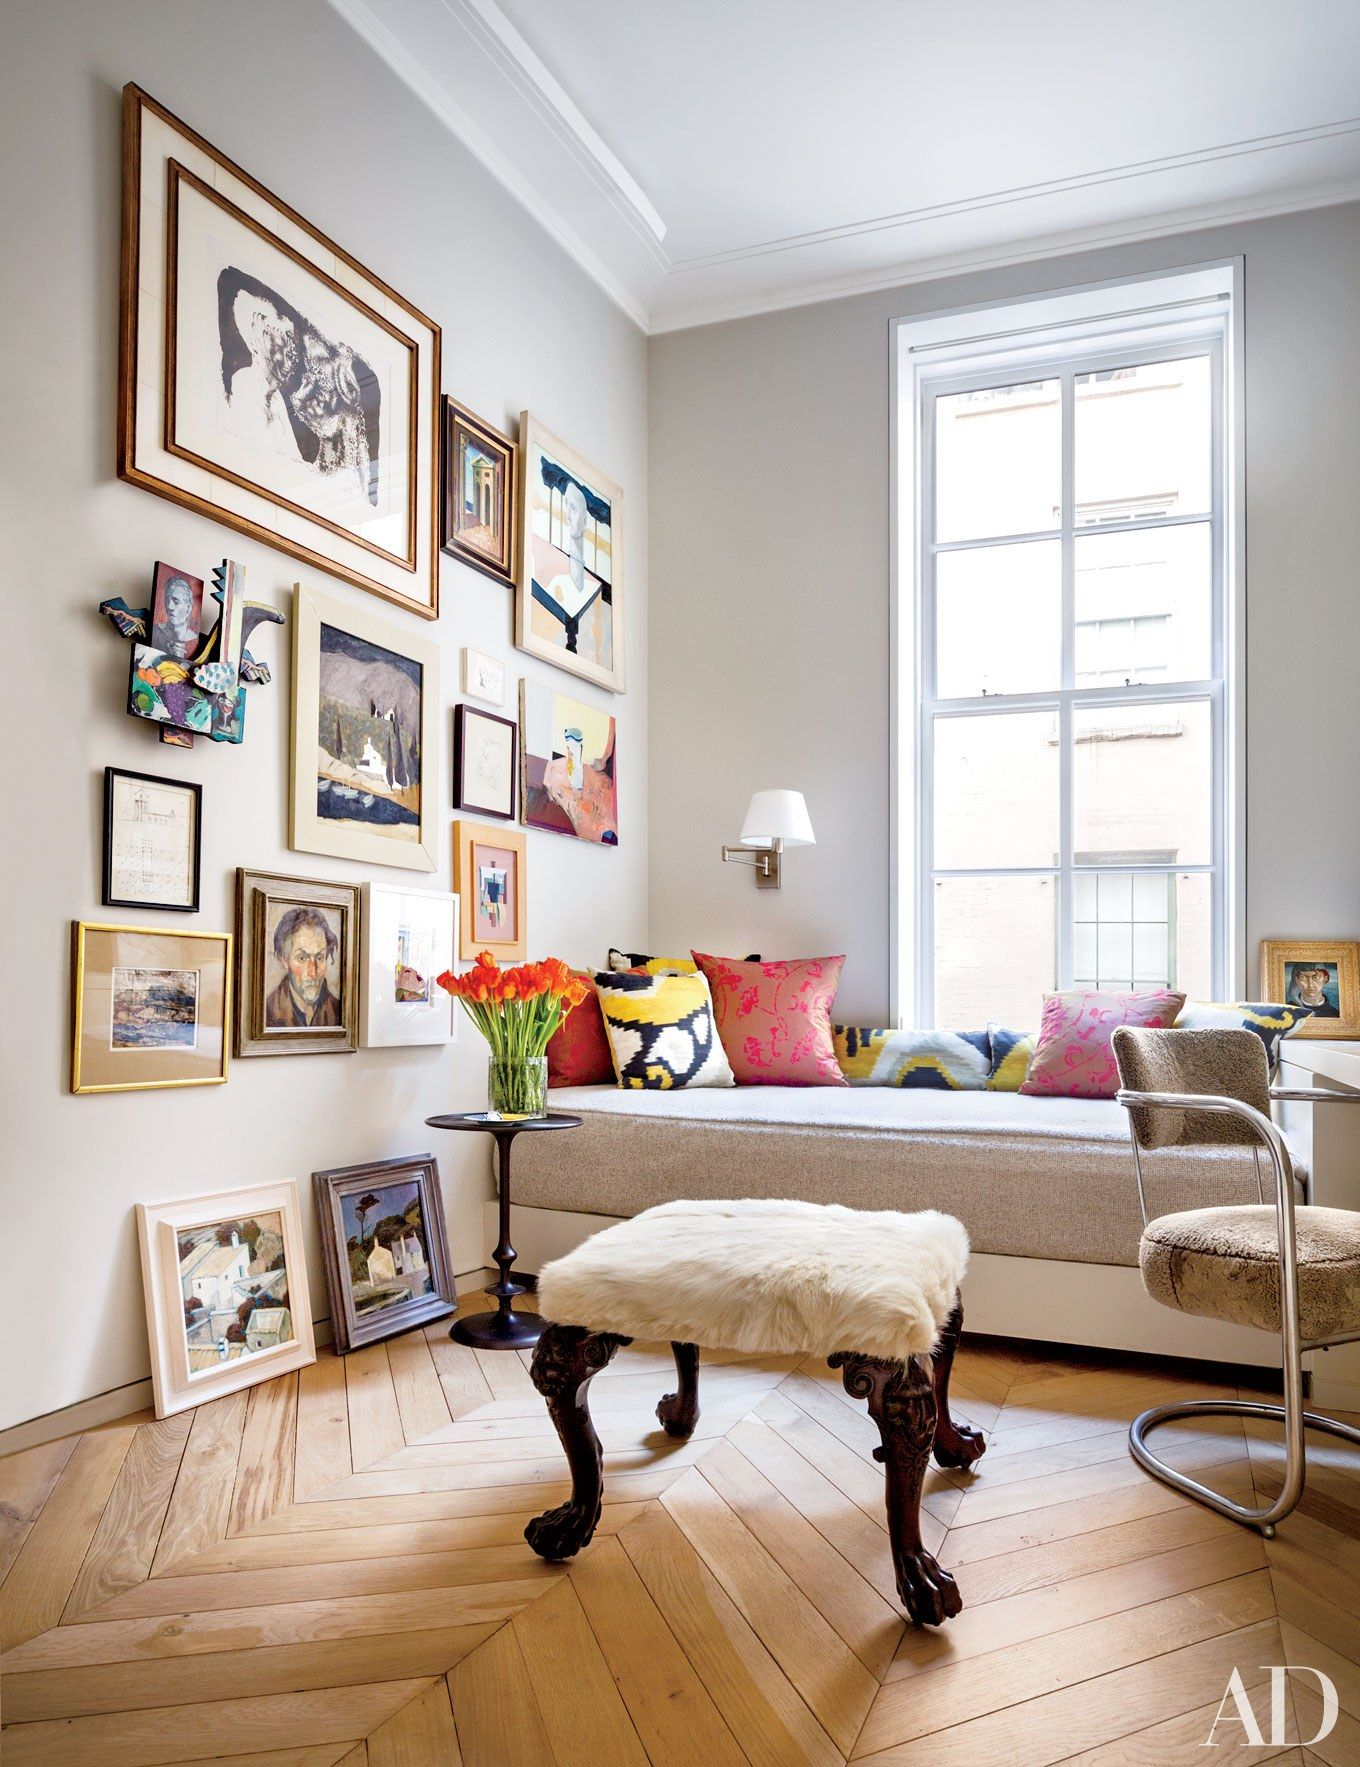 BM Classic Gray Gray Bedroom & Living Room Paint Color Ideas Photos | Architectural Digest